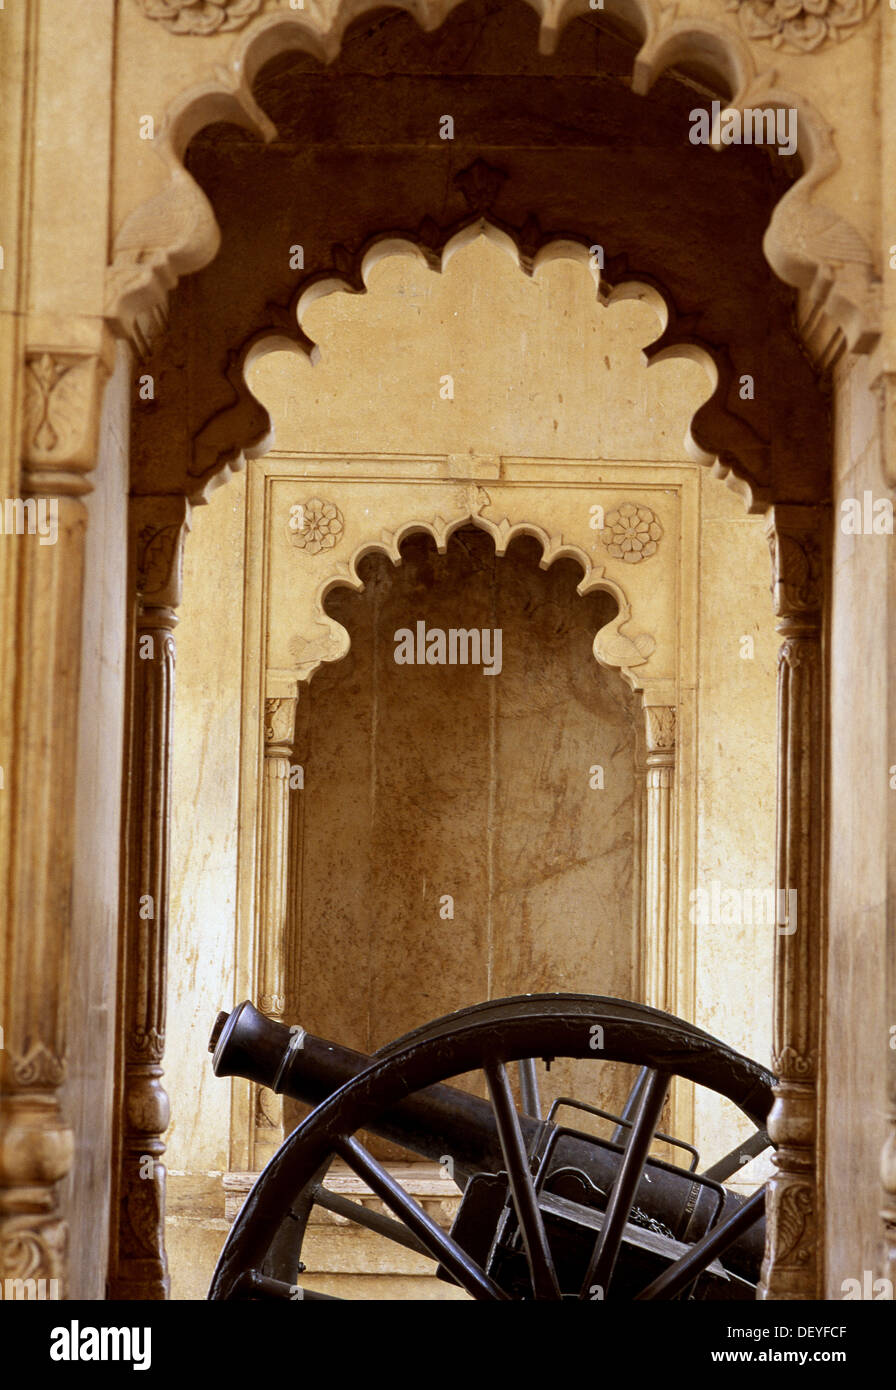 Old cannon, Udaipur, Rajasthan, India - Stock Image